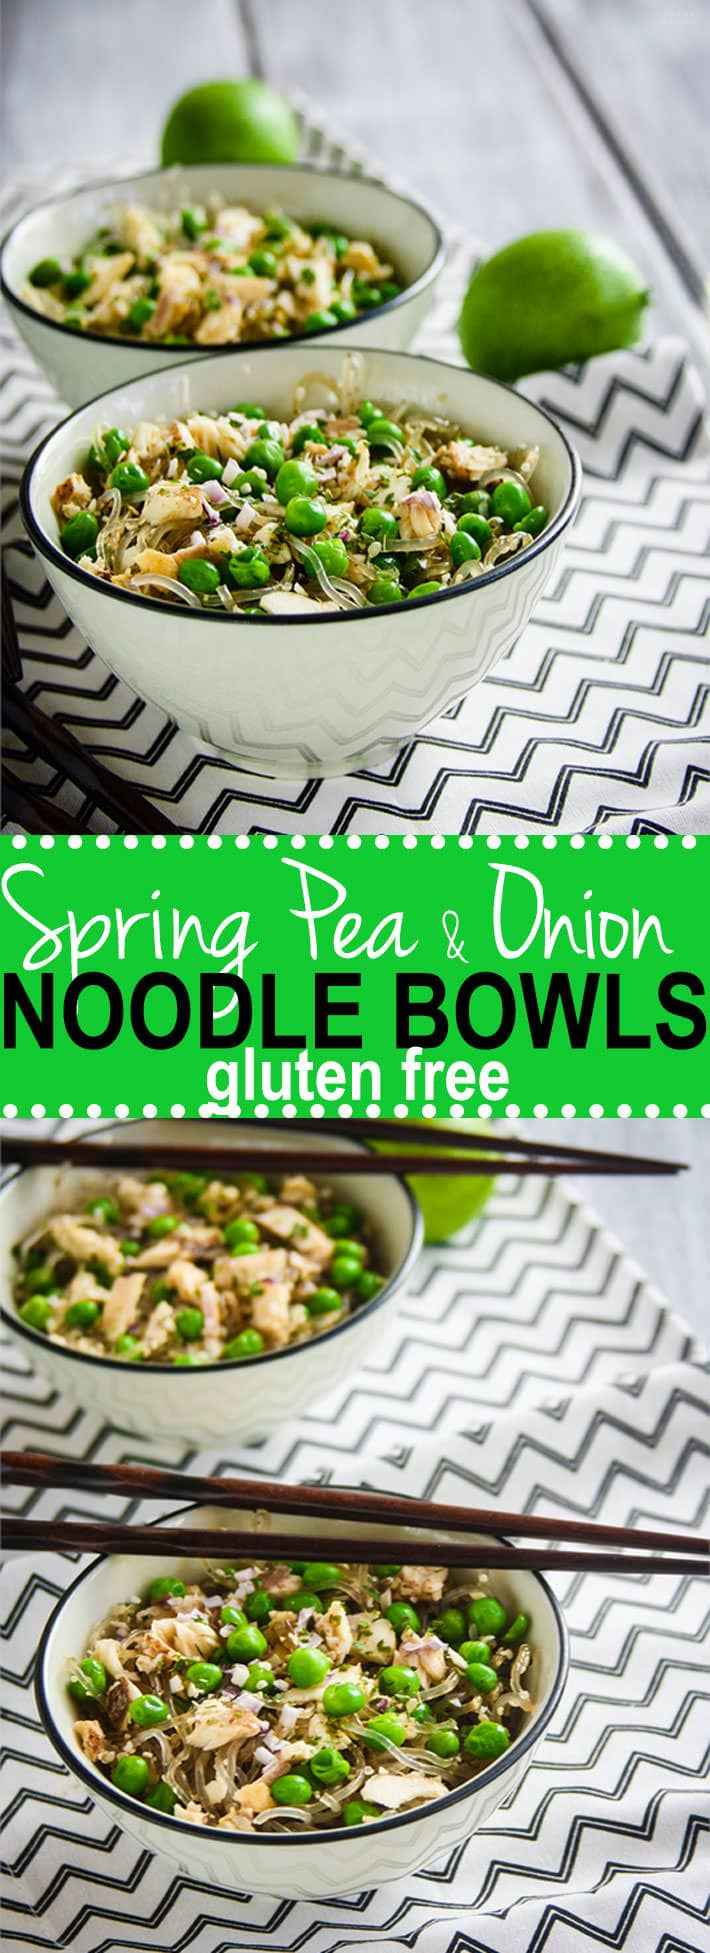 Spring Pea and Onion Gluten Free Noodle Bowls; a light but flavorful Spring dish! Made gluten free with vermicelli rice or kelp noodles and great with seafood, chicken, or tofu! Ready in 30 minutes or less.